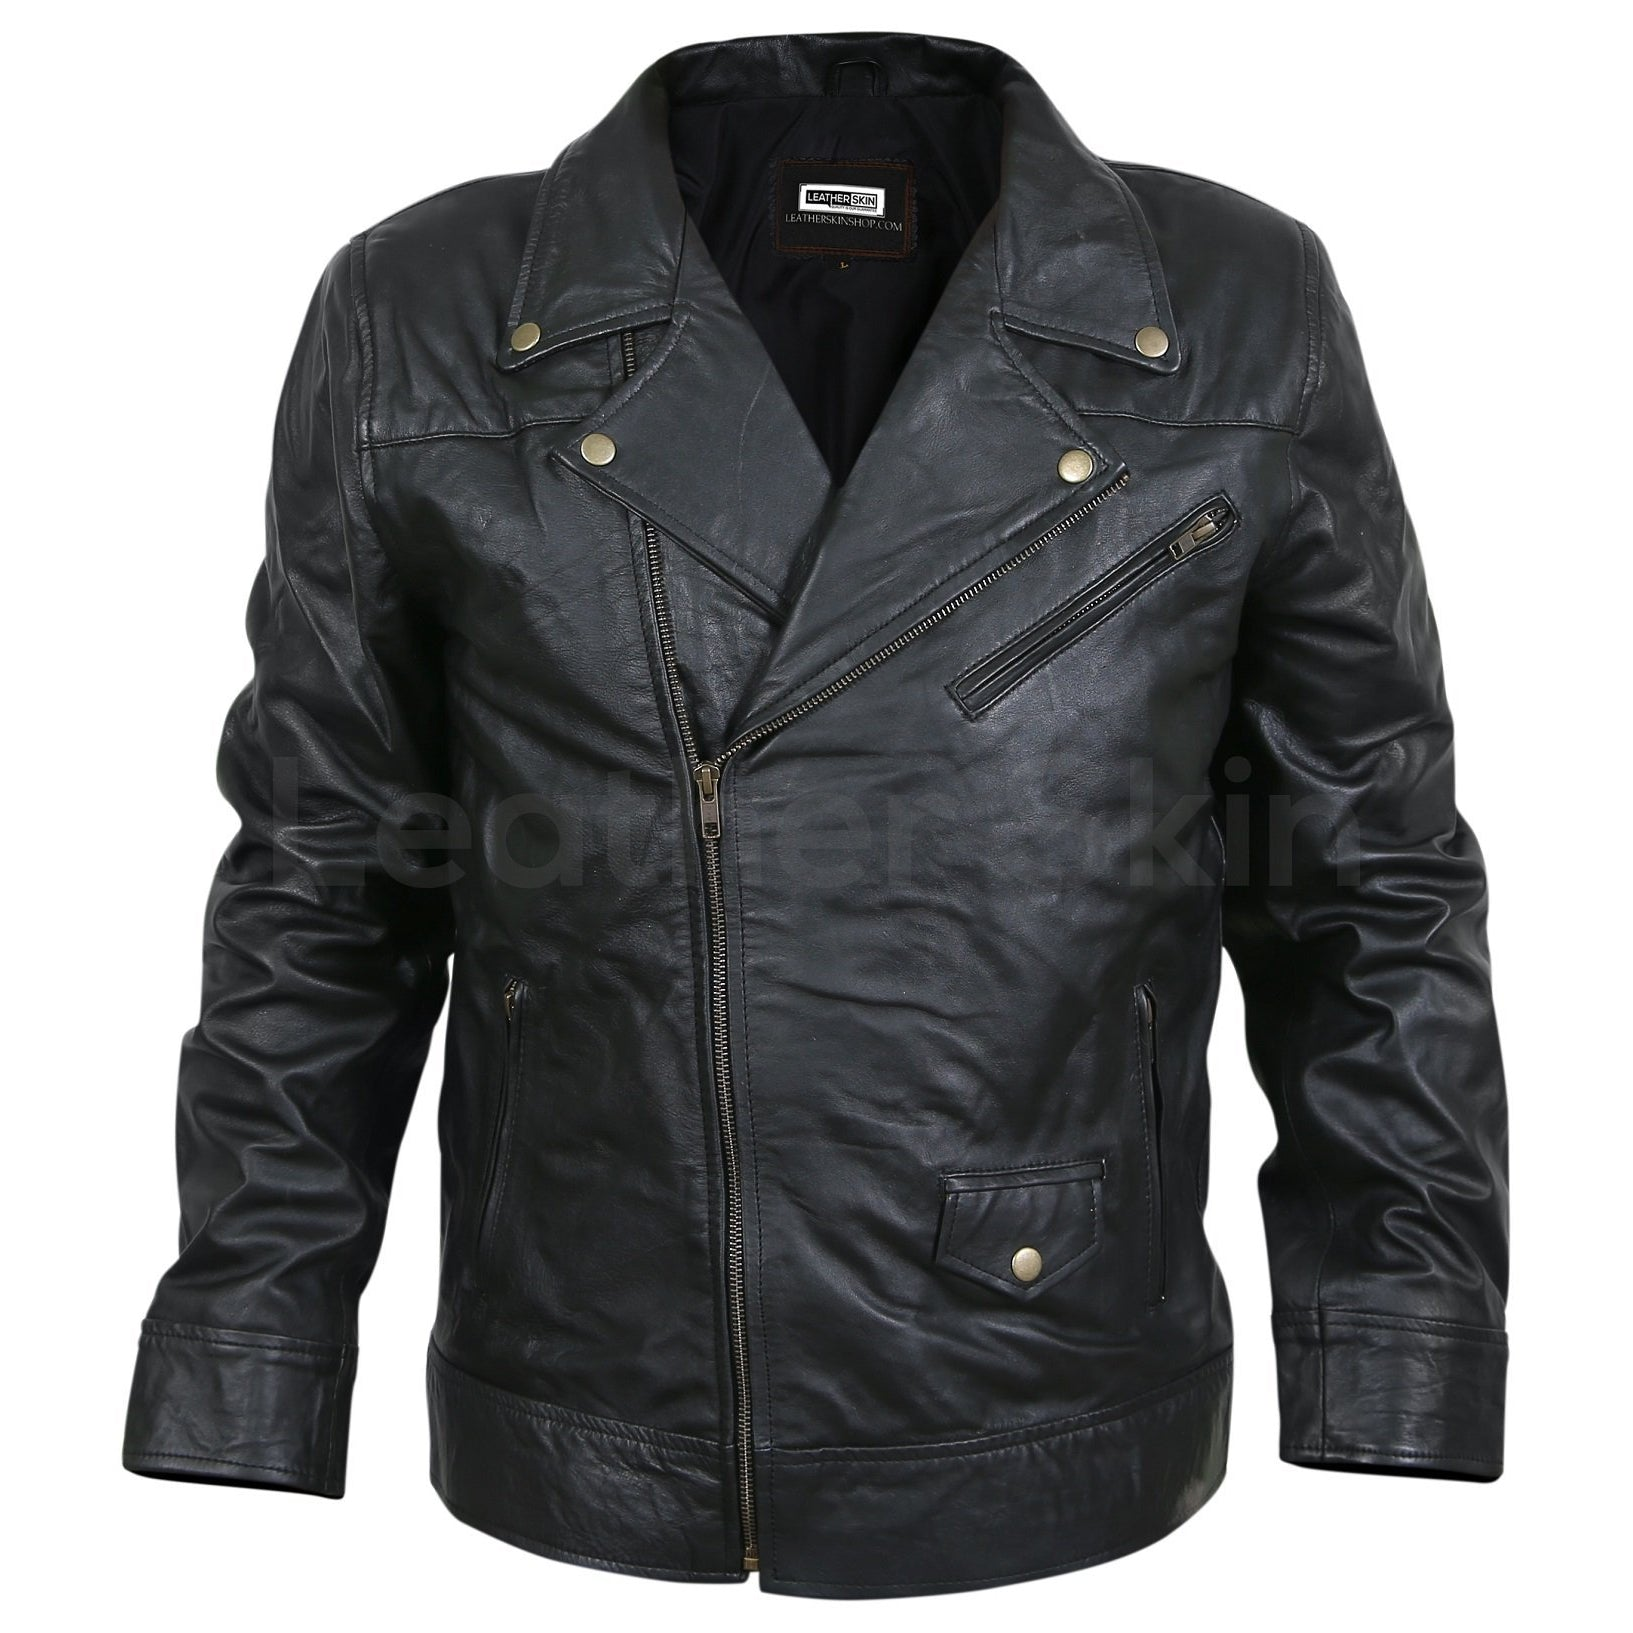 biker leather jacket with Antique Zippers